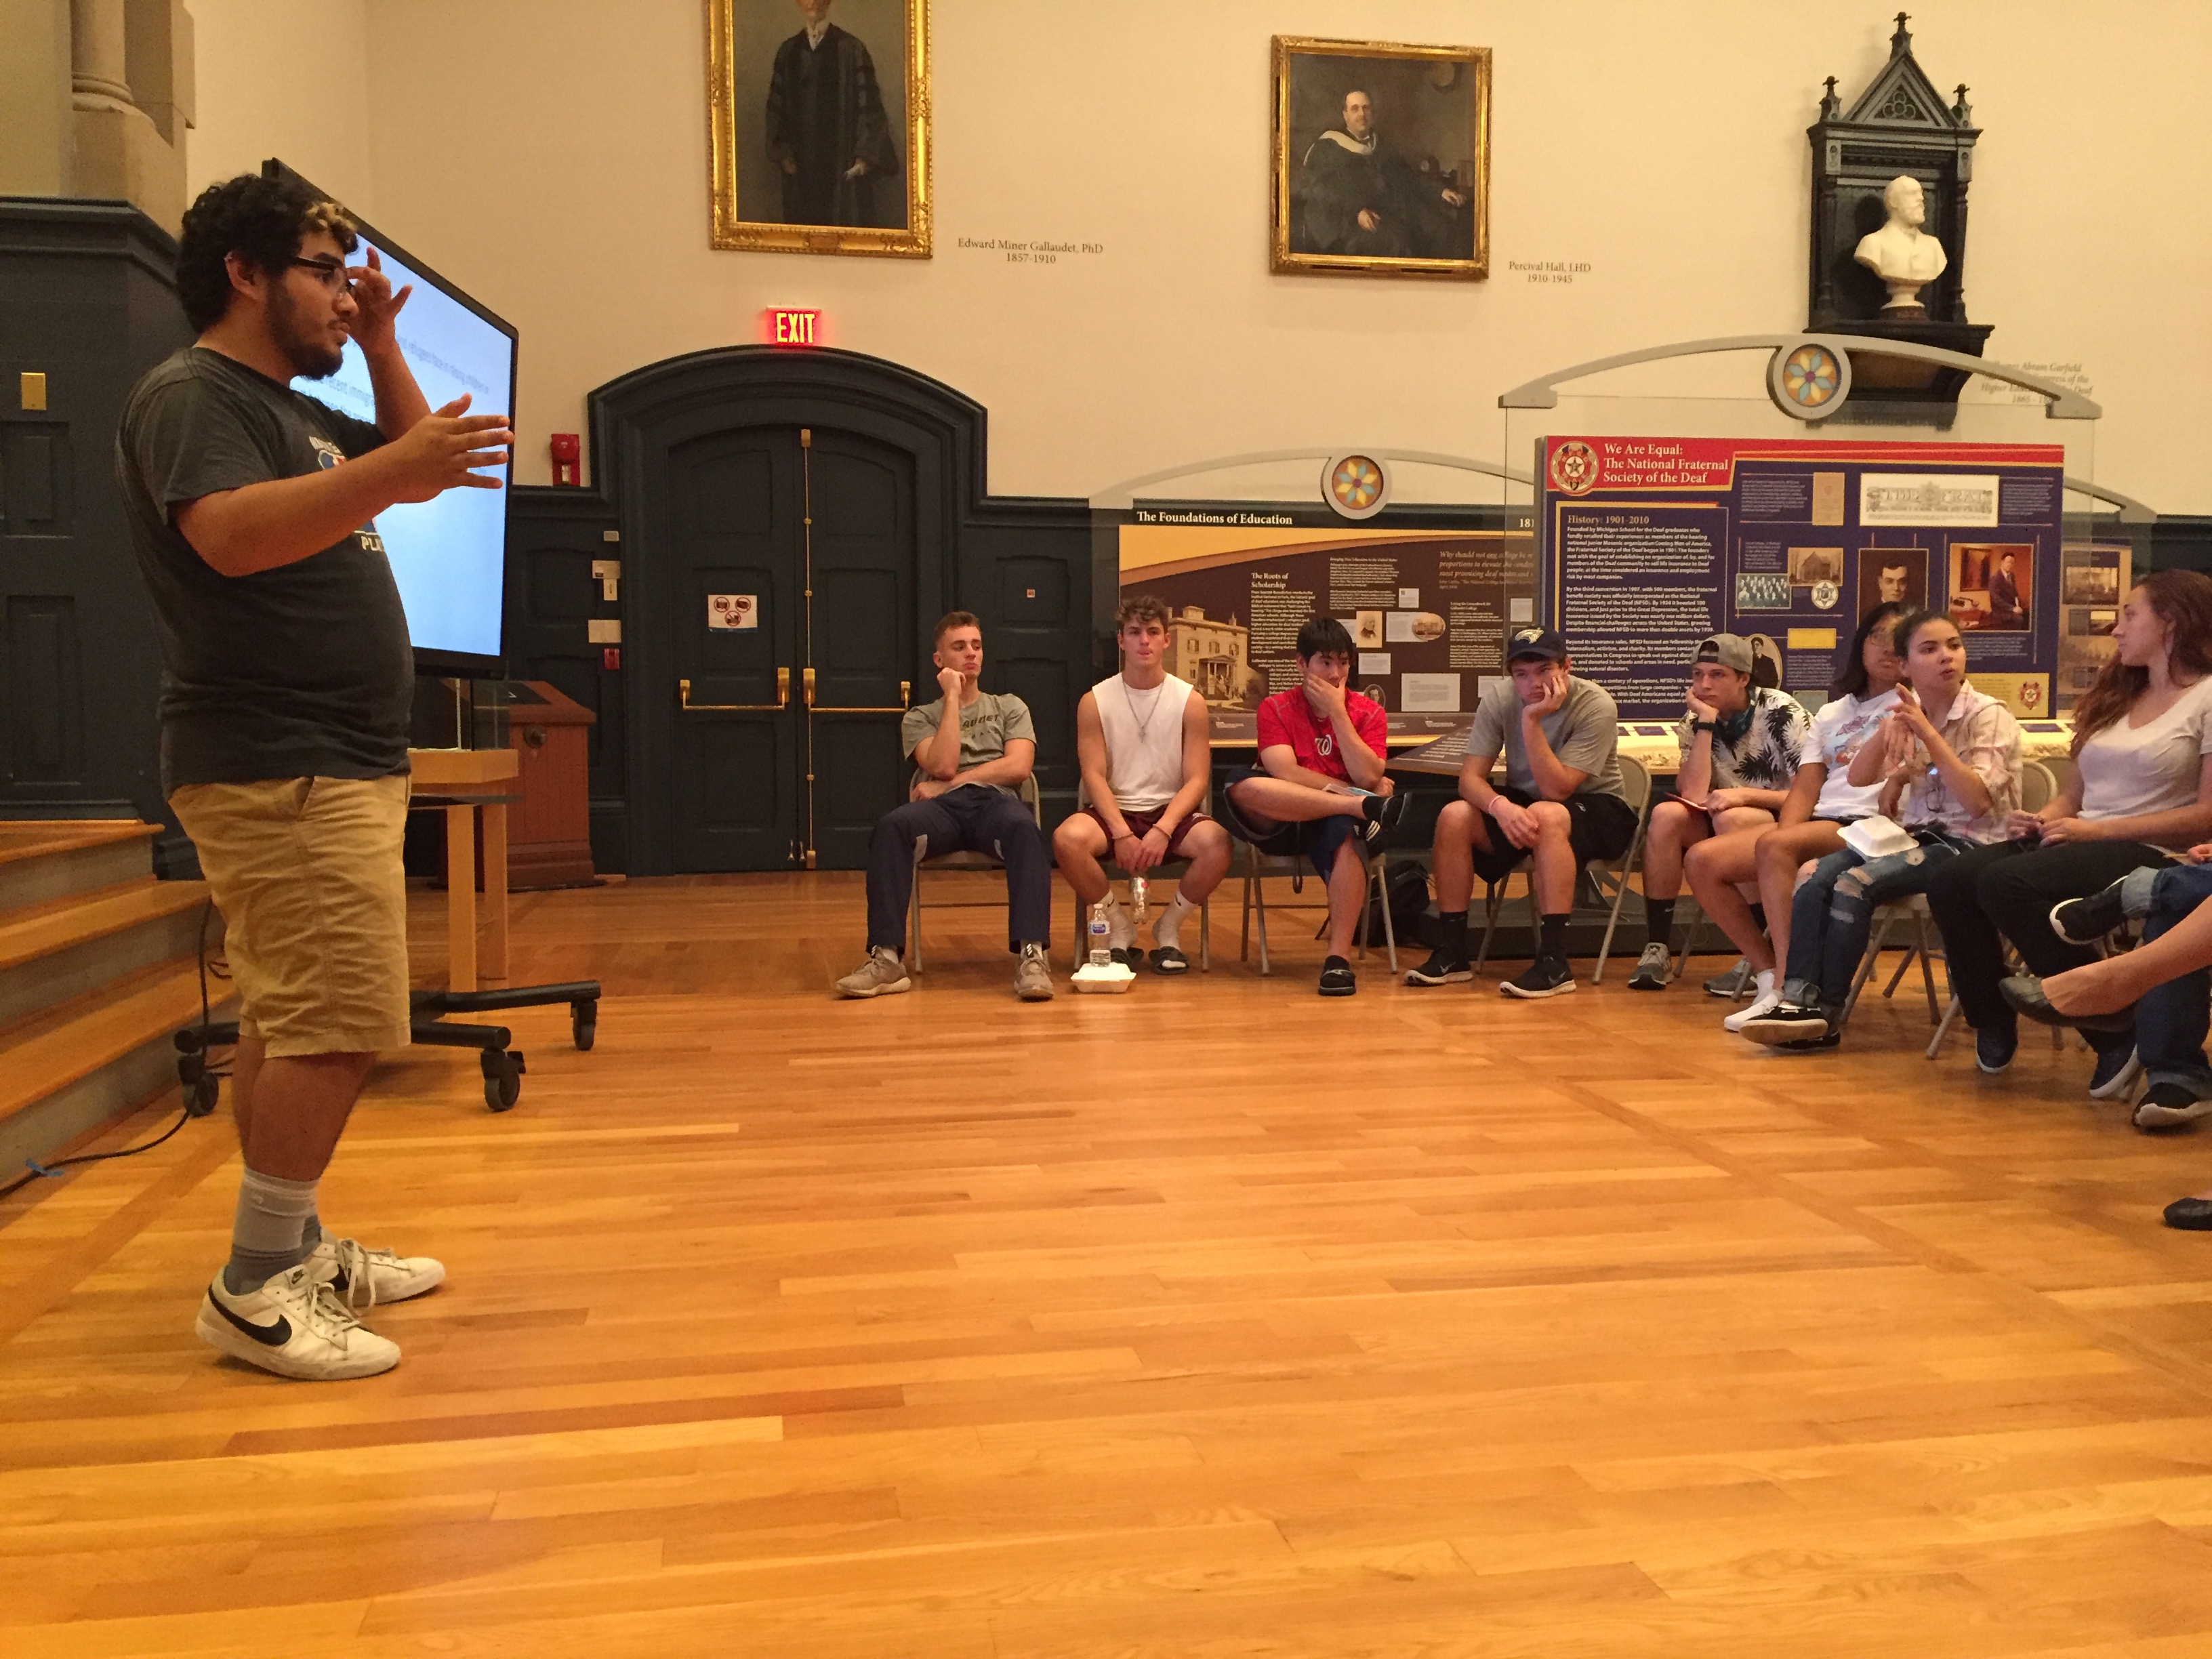 Pablo Gonzalez speaks in front of audience inside of Chapel Hall where the Museum is.